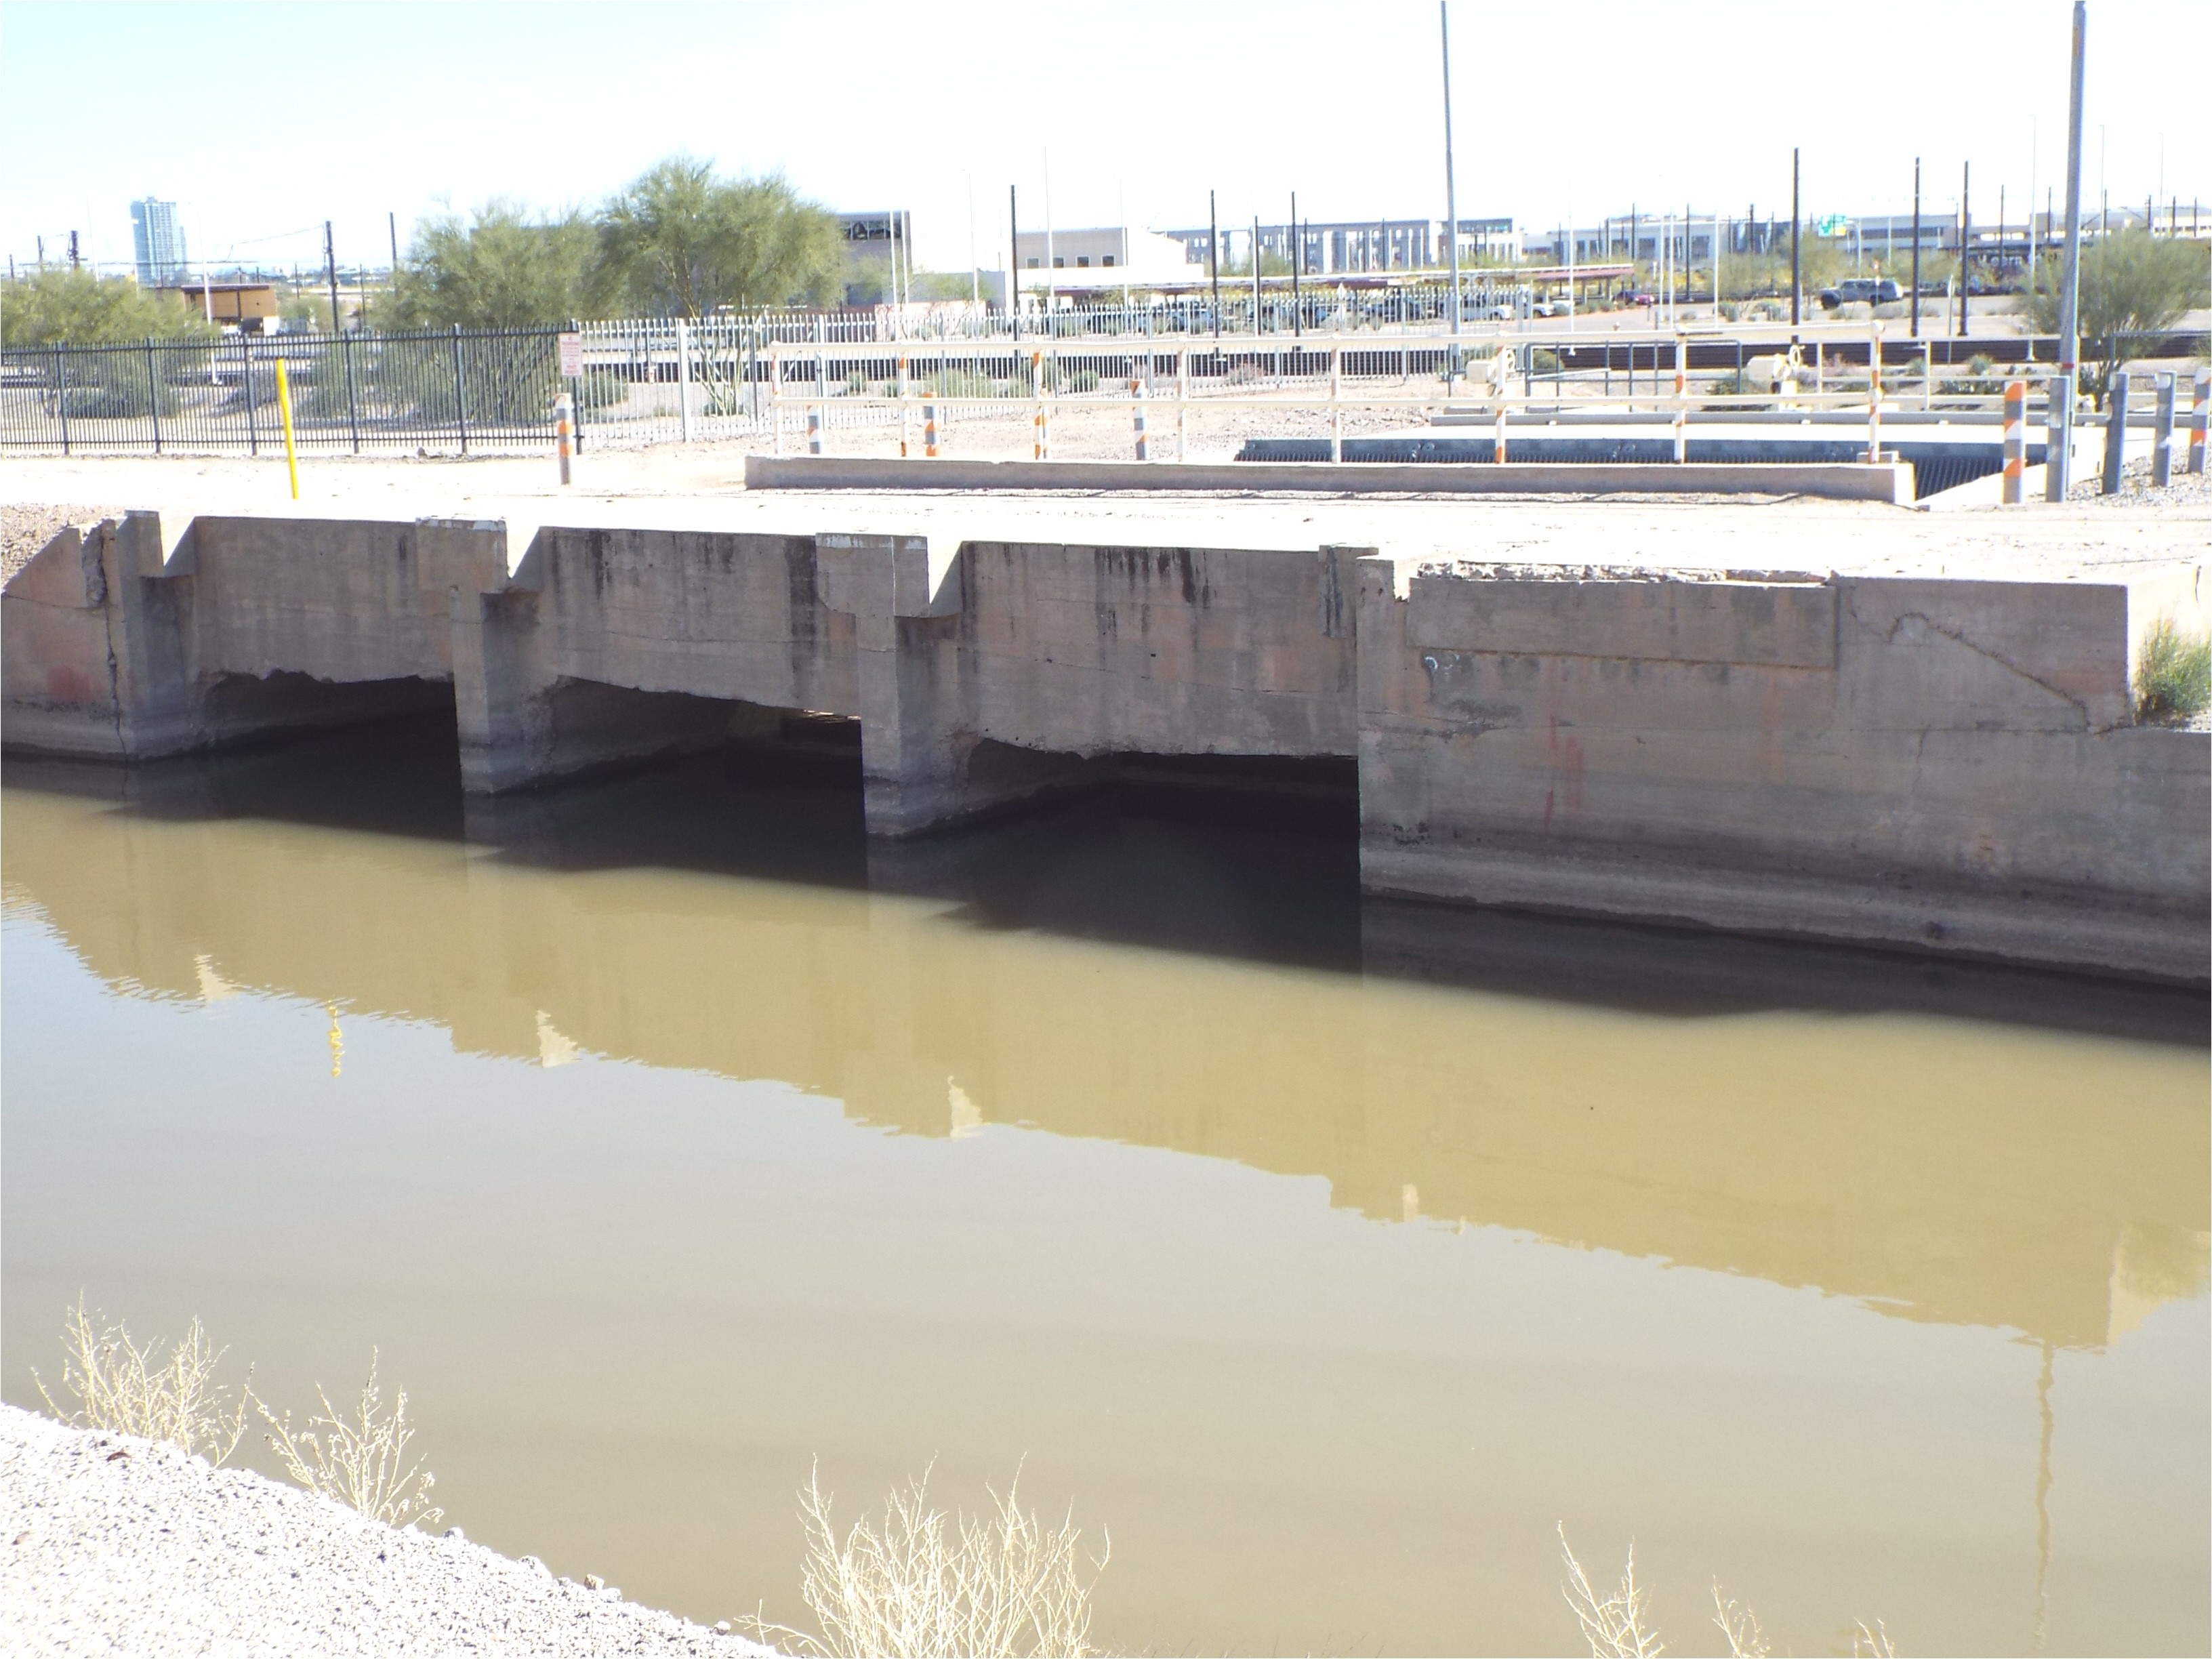 it is located near the end of 48th street on a parcel owned by the city of phoenix